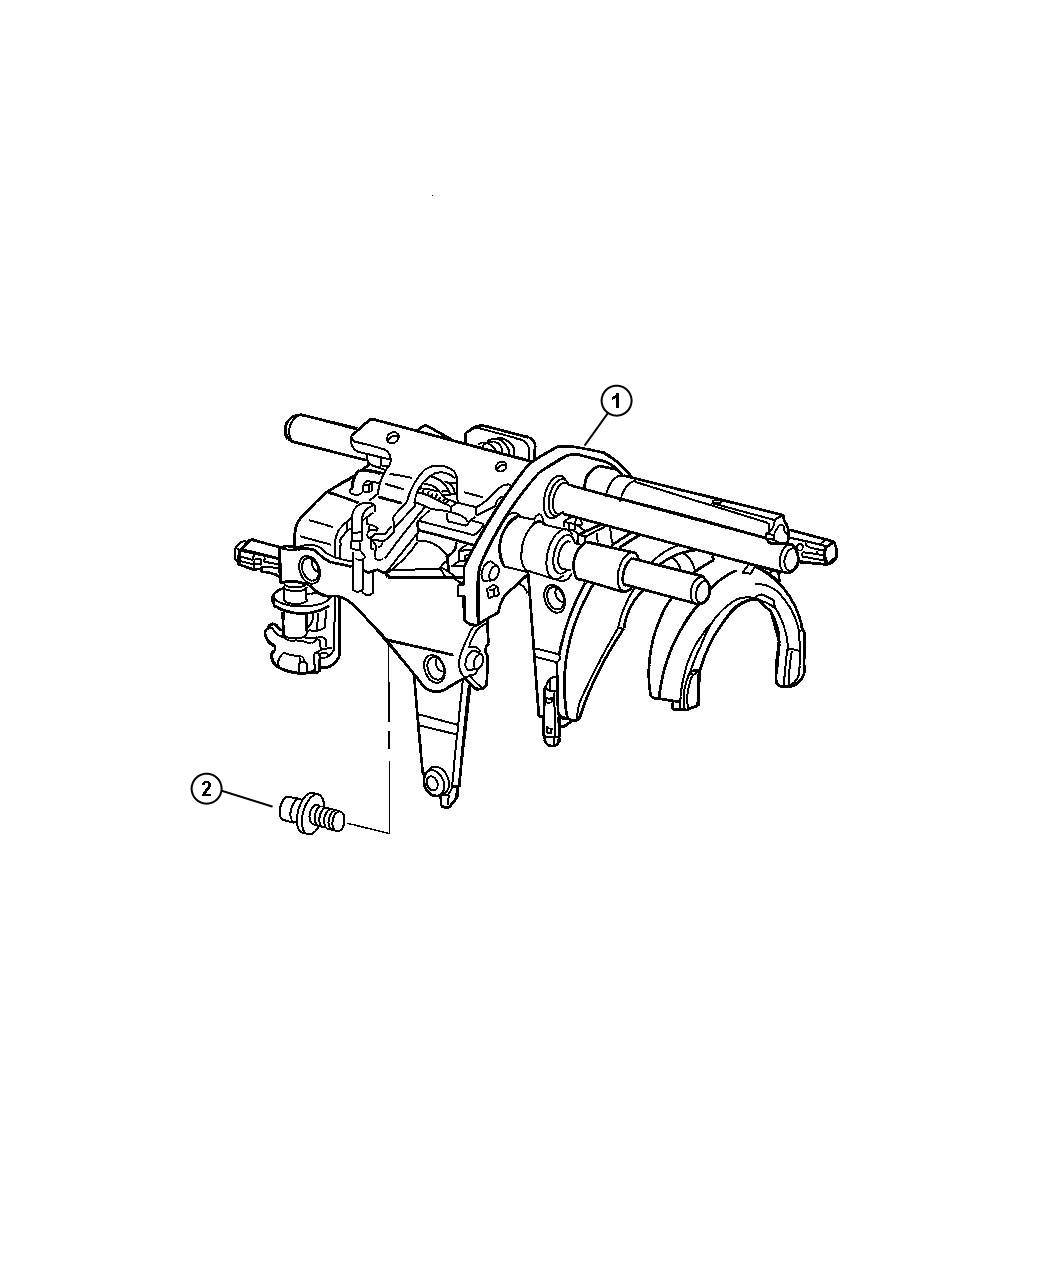 Jeep Wrangler Used For Fork And Rail Assy Manual